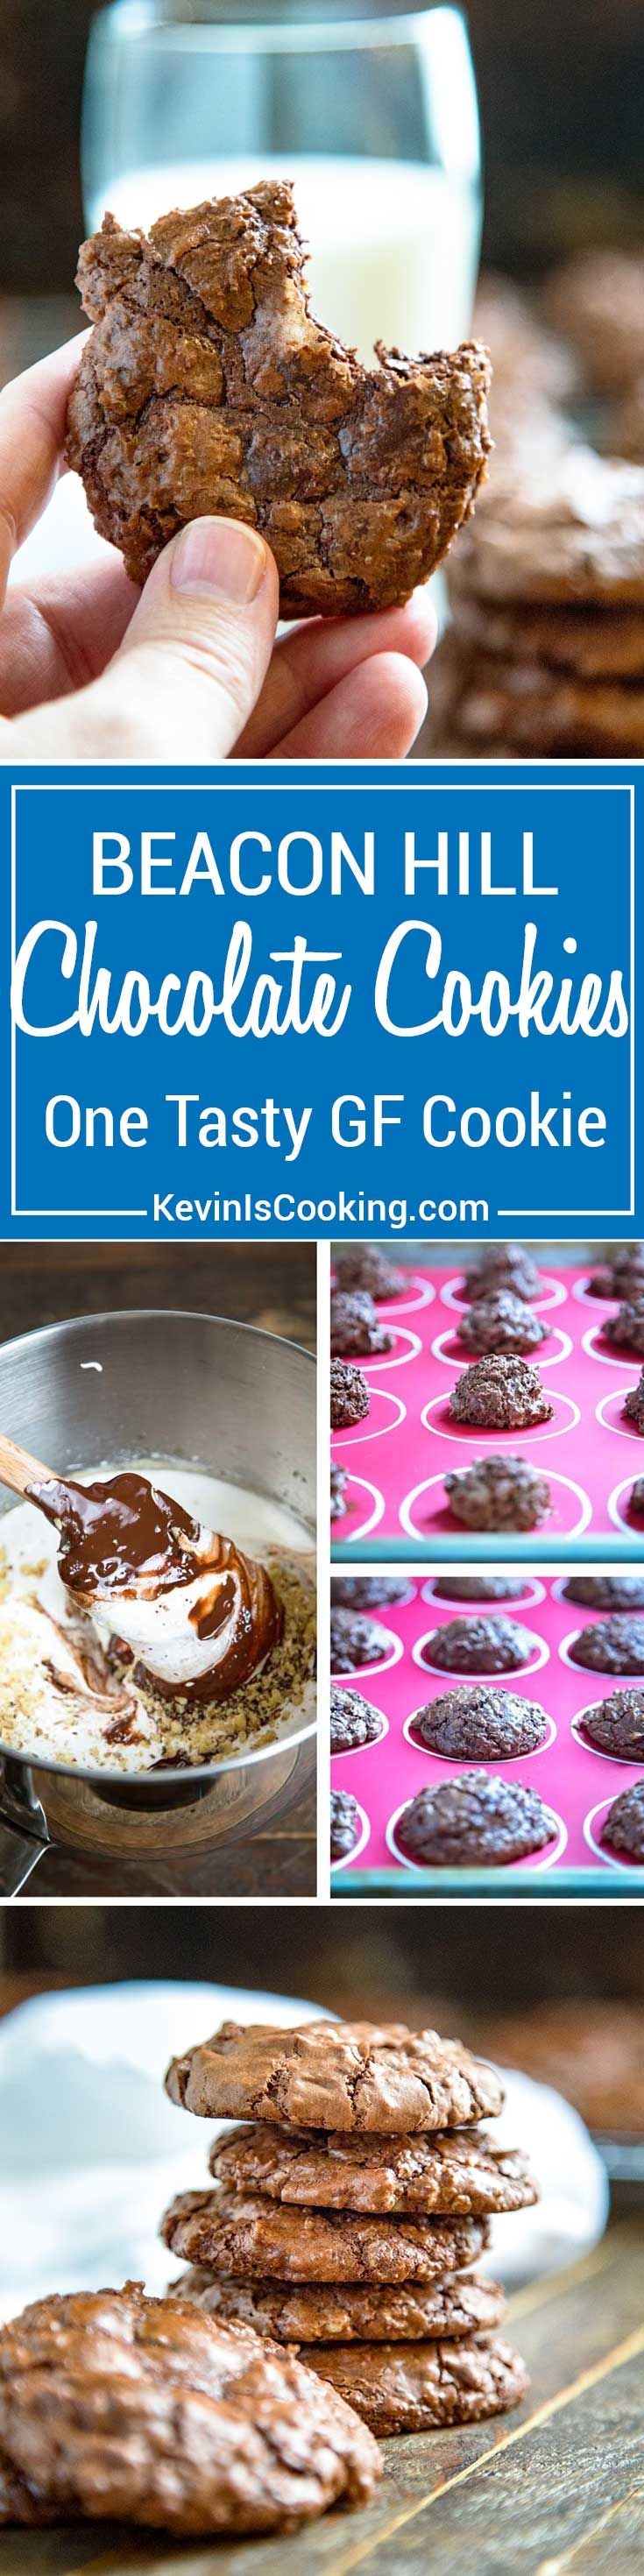 704 best Cookies and Bars images on Pinterest | Baking, Conch ...